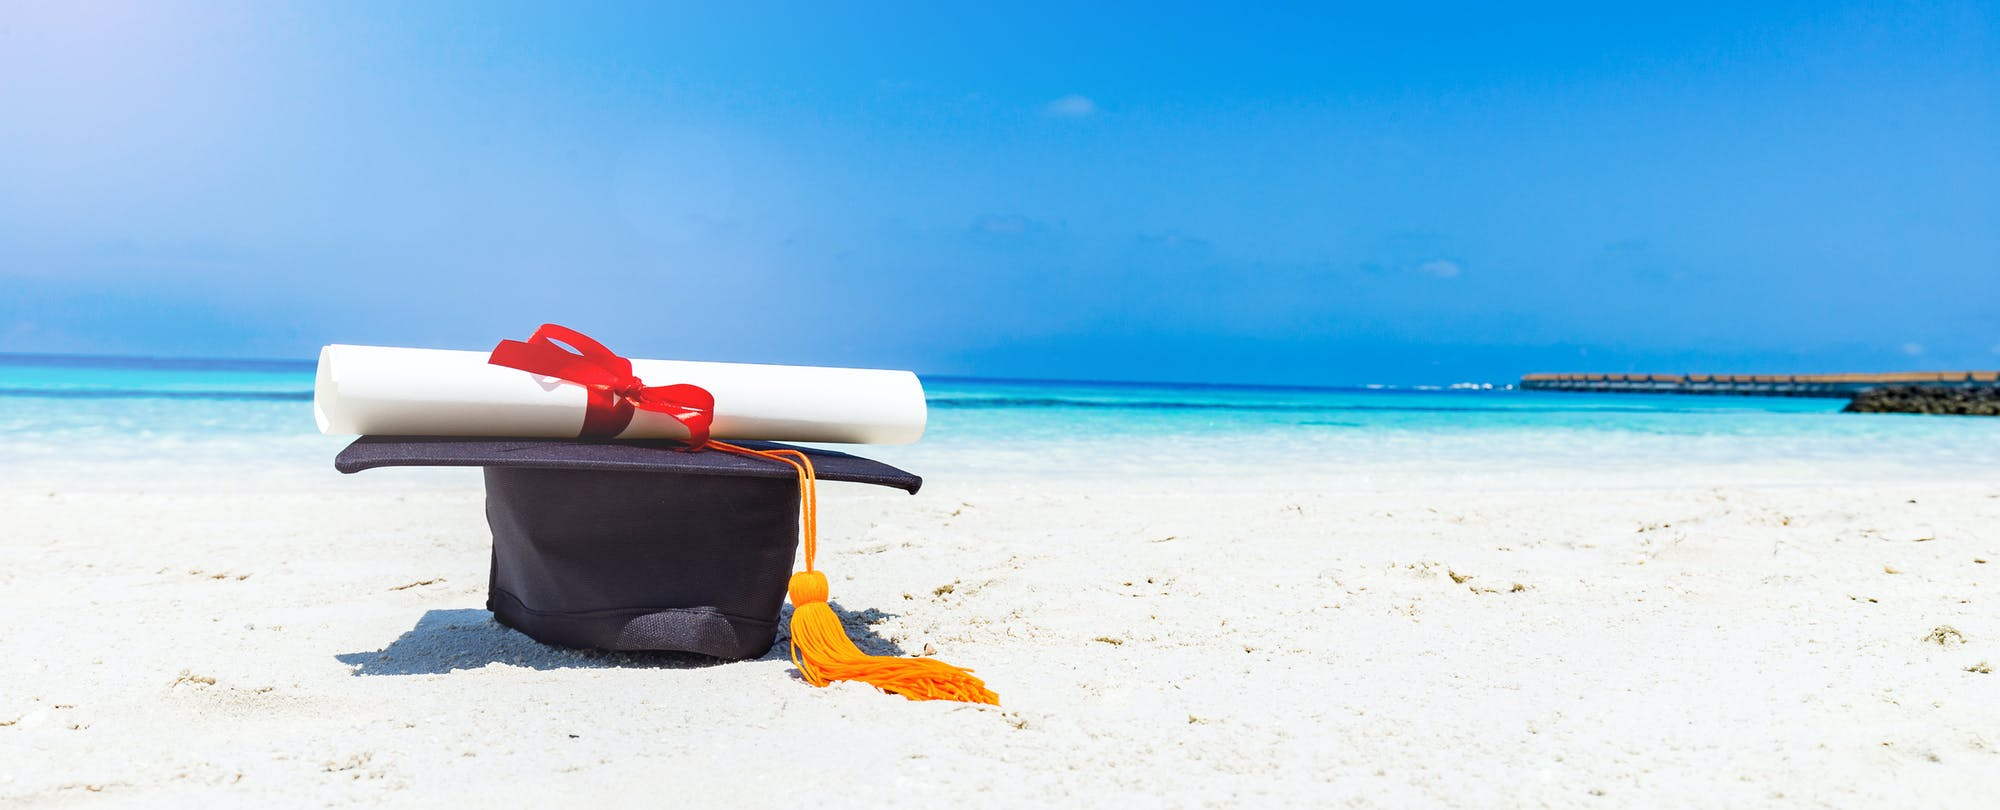 Chase the Endless Summer With These 50+ Higher-Ed Conferences